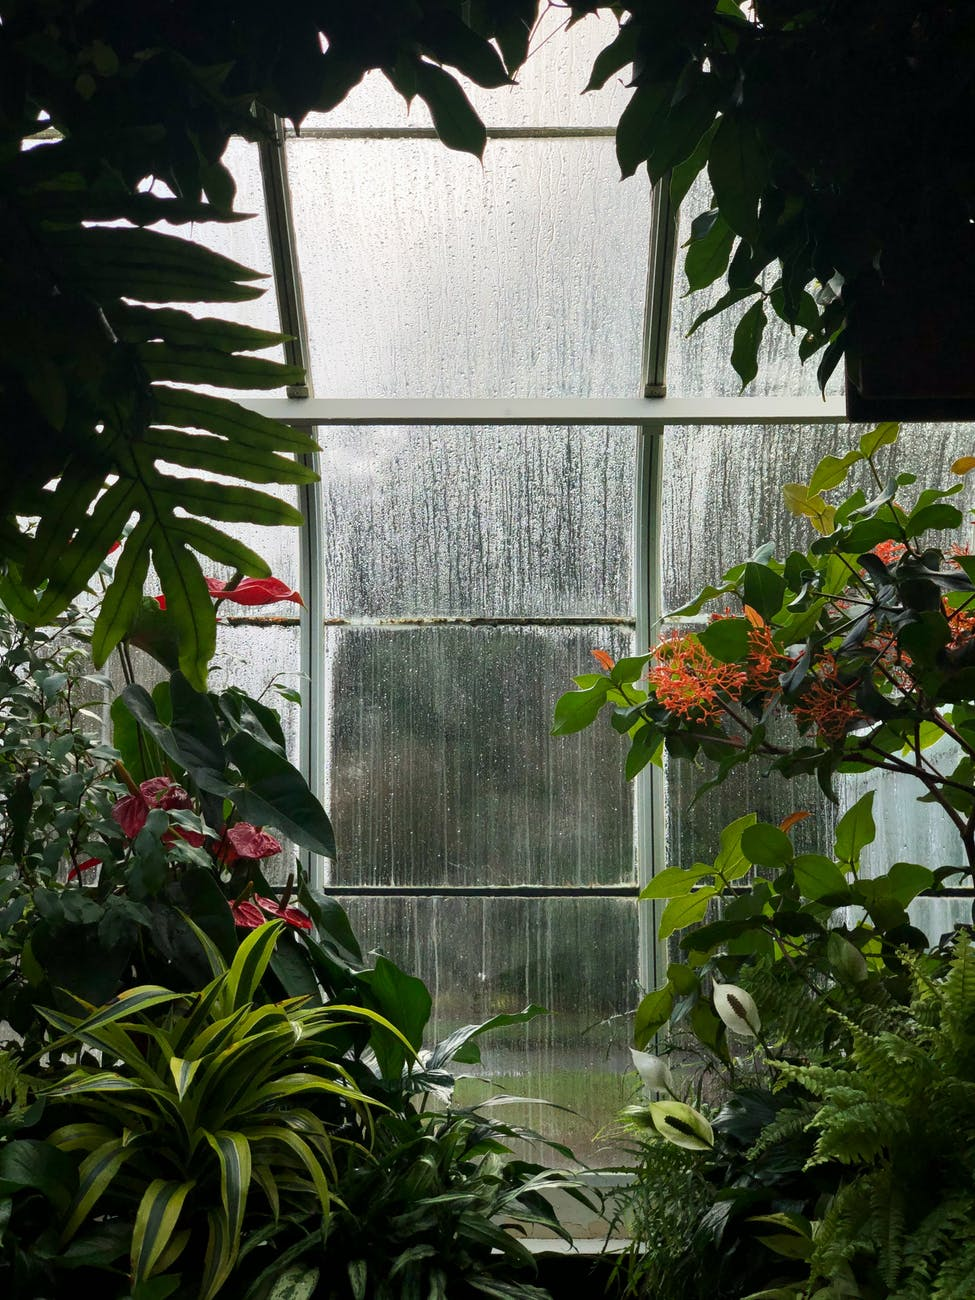 green and red plants inside greenhouse